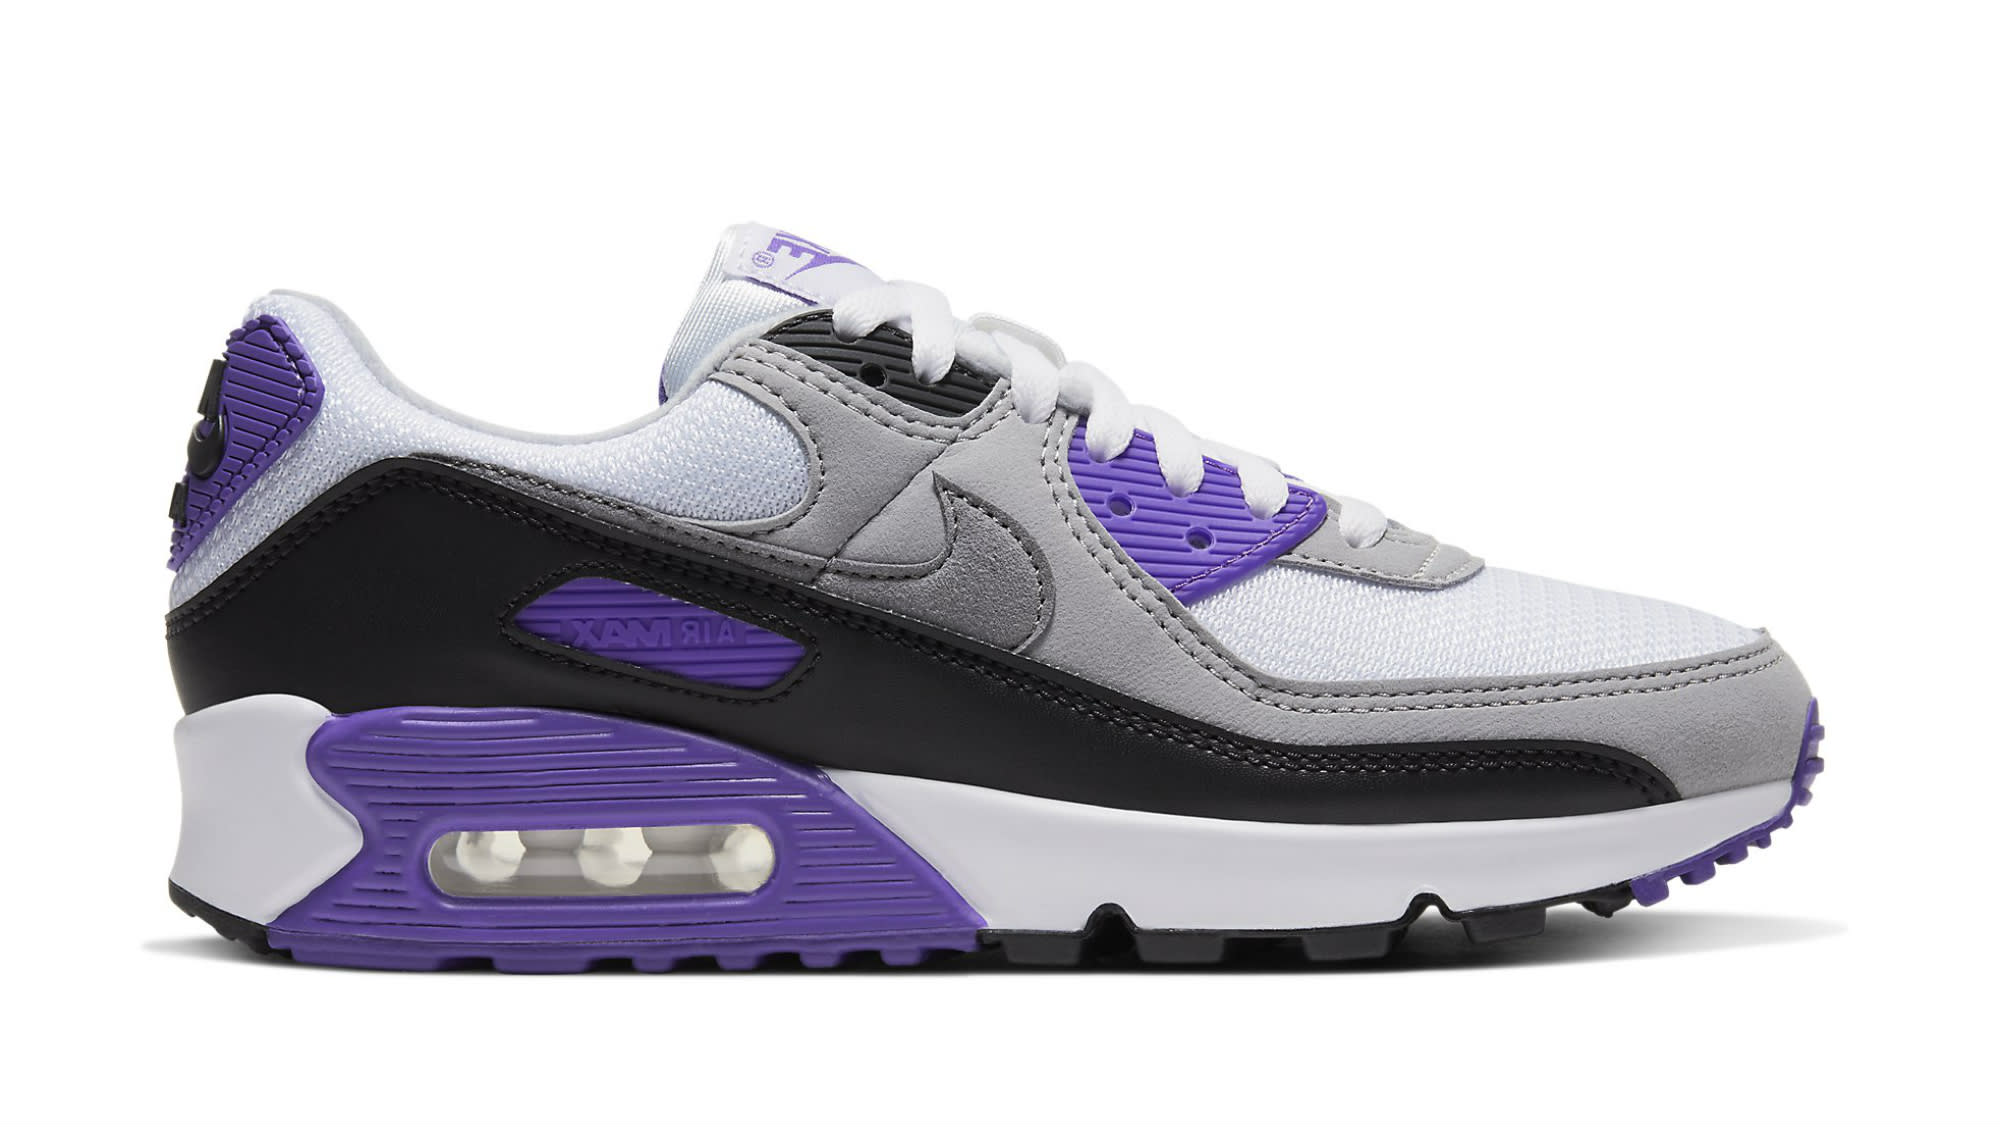 nike-air-max-90-hyper-grape-cd0490-103-release-date